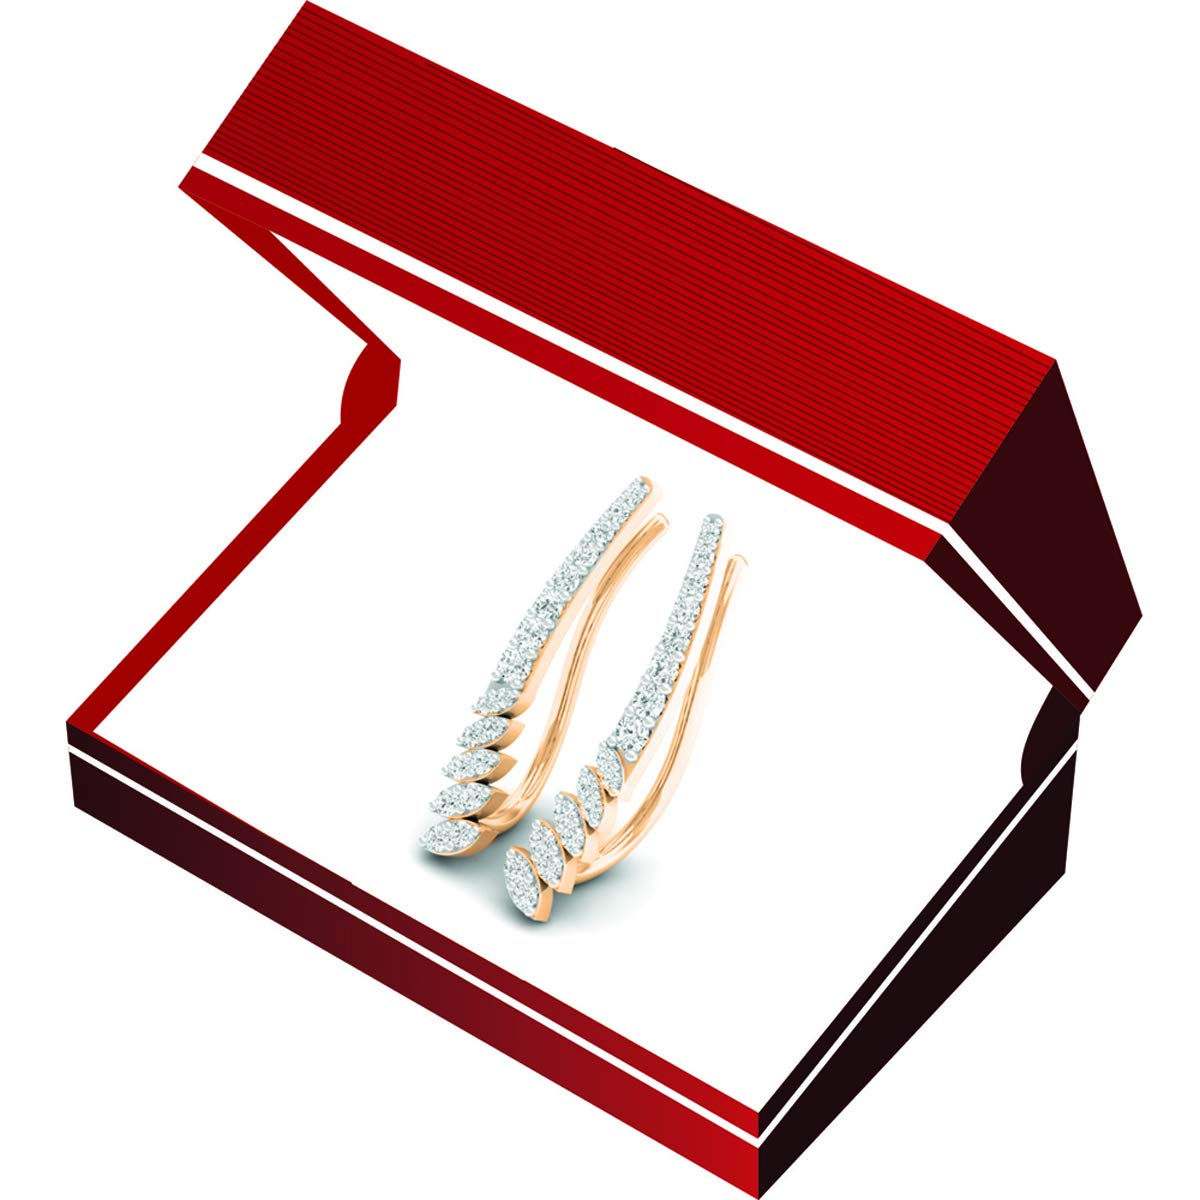 0.30 Carat ctw 10K Gold Round White Diamond Ladies Climber Earrings 1//3 CT Yellow Gold Dazzlingrock Collection K4303-10KY